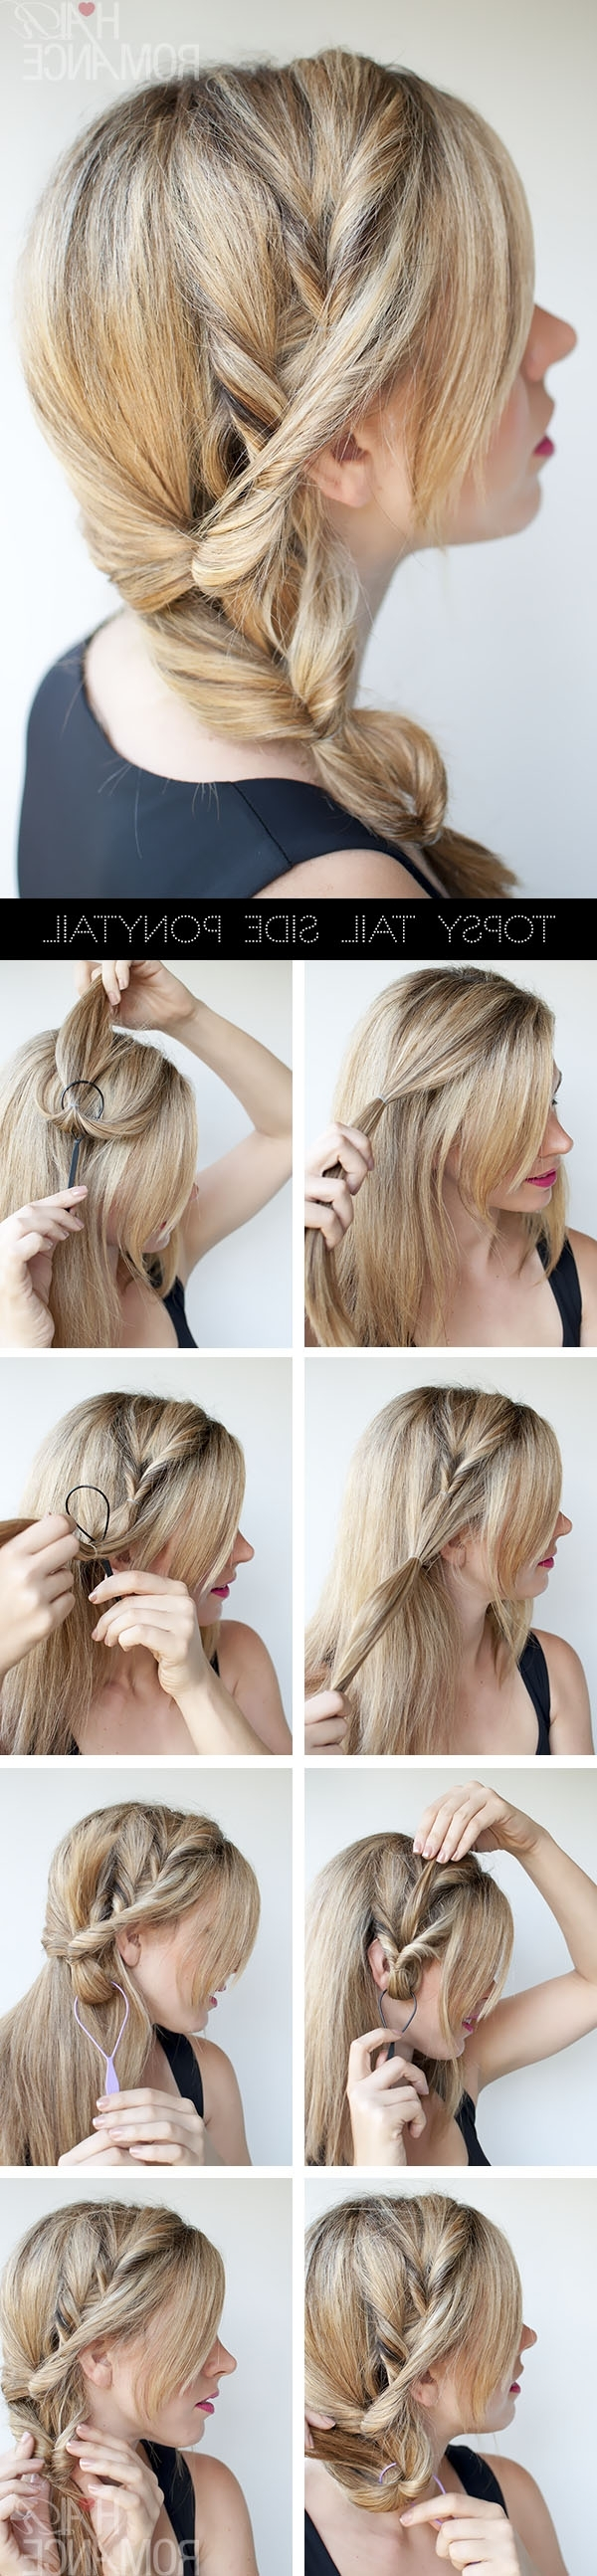 Topsy Tail Ponytail Tutorial – The No Braid Side Braid Hairstyle Regarding Most Recent Side Braided Ponytail Hairstyles (View 13 of 20)